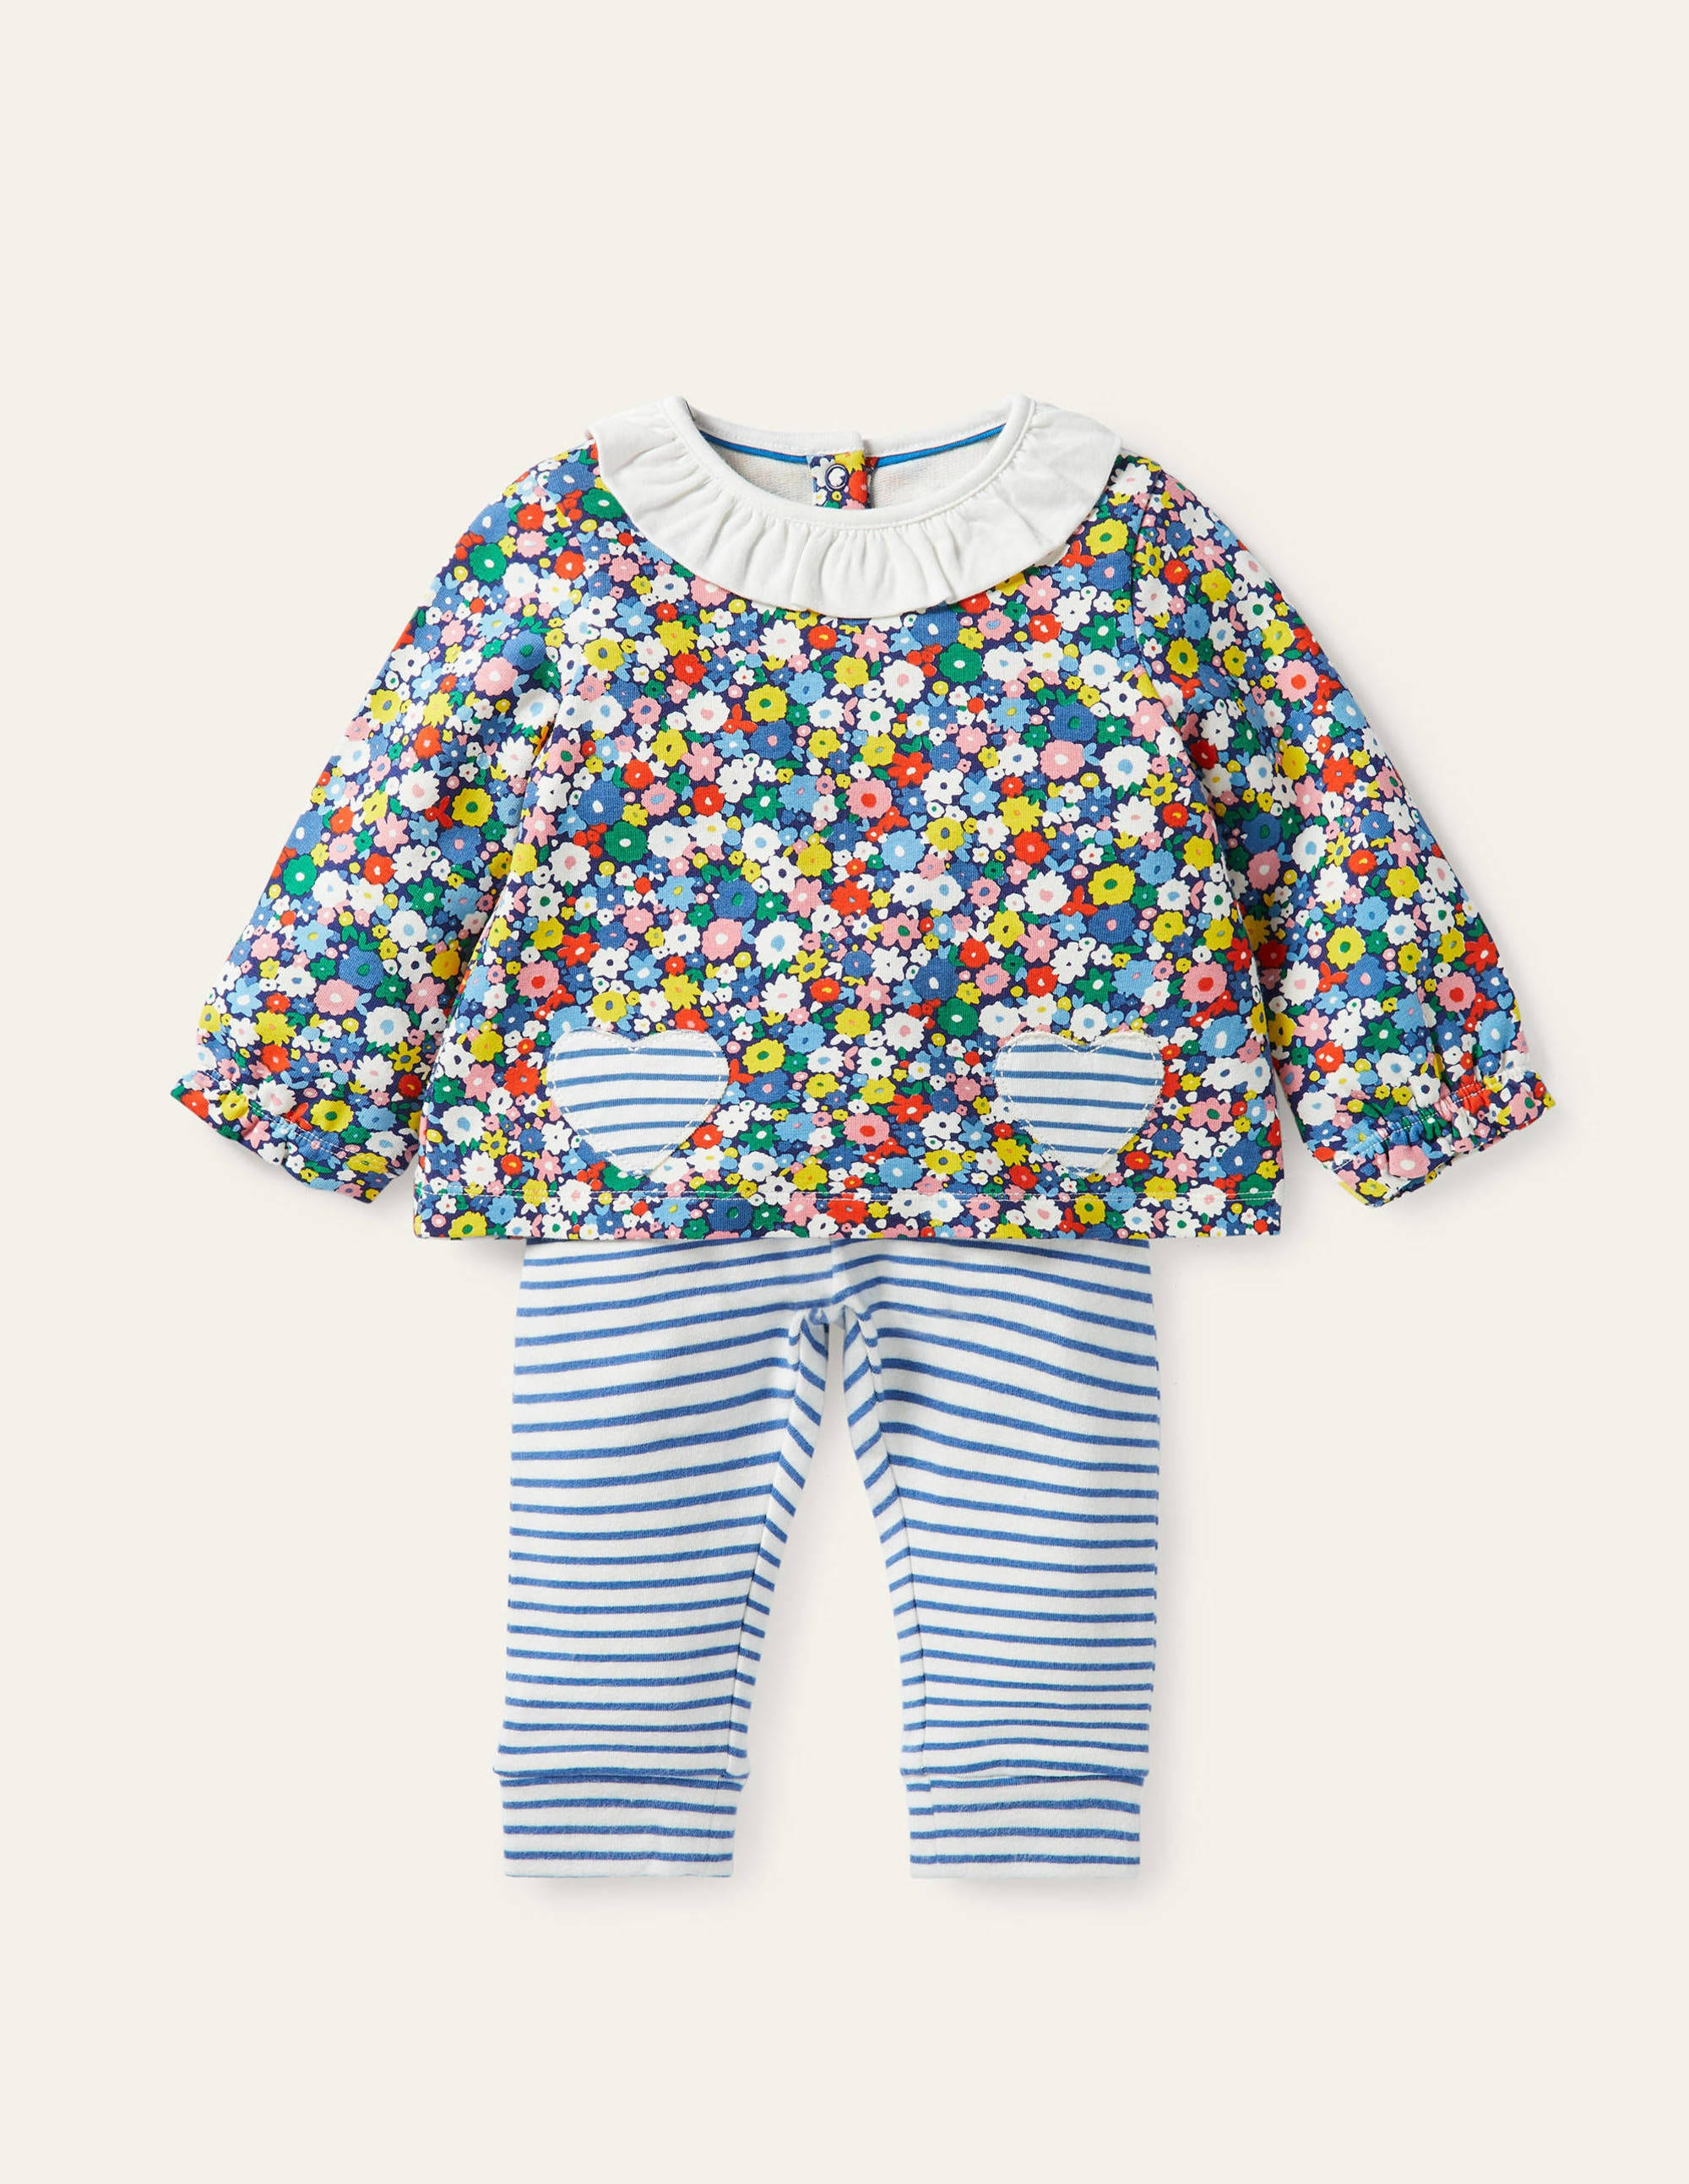 Boden Supersoft Jersey Play Set - Multi Flower Patch